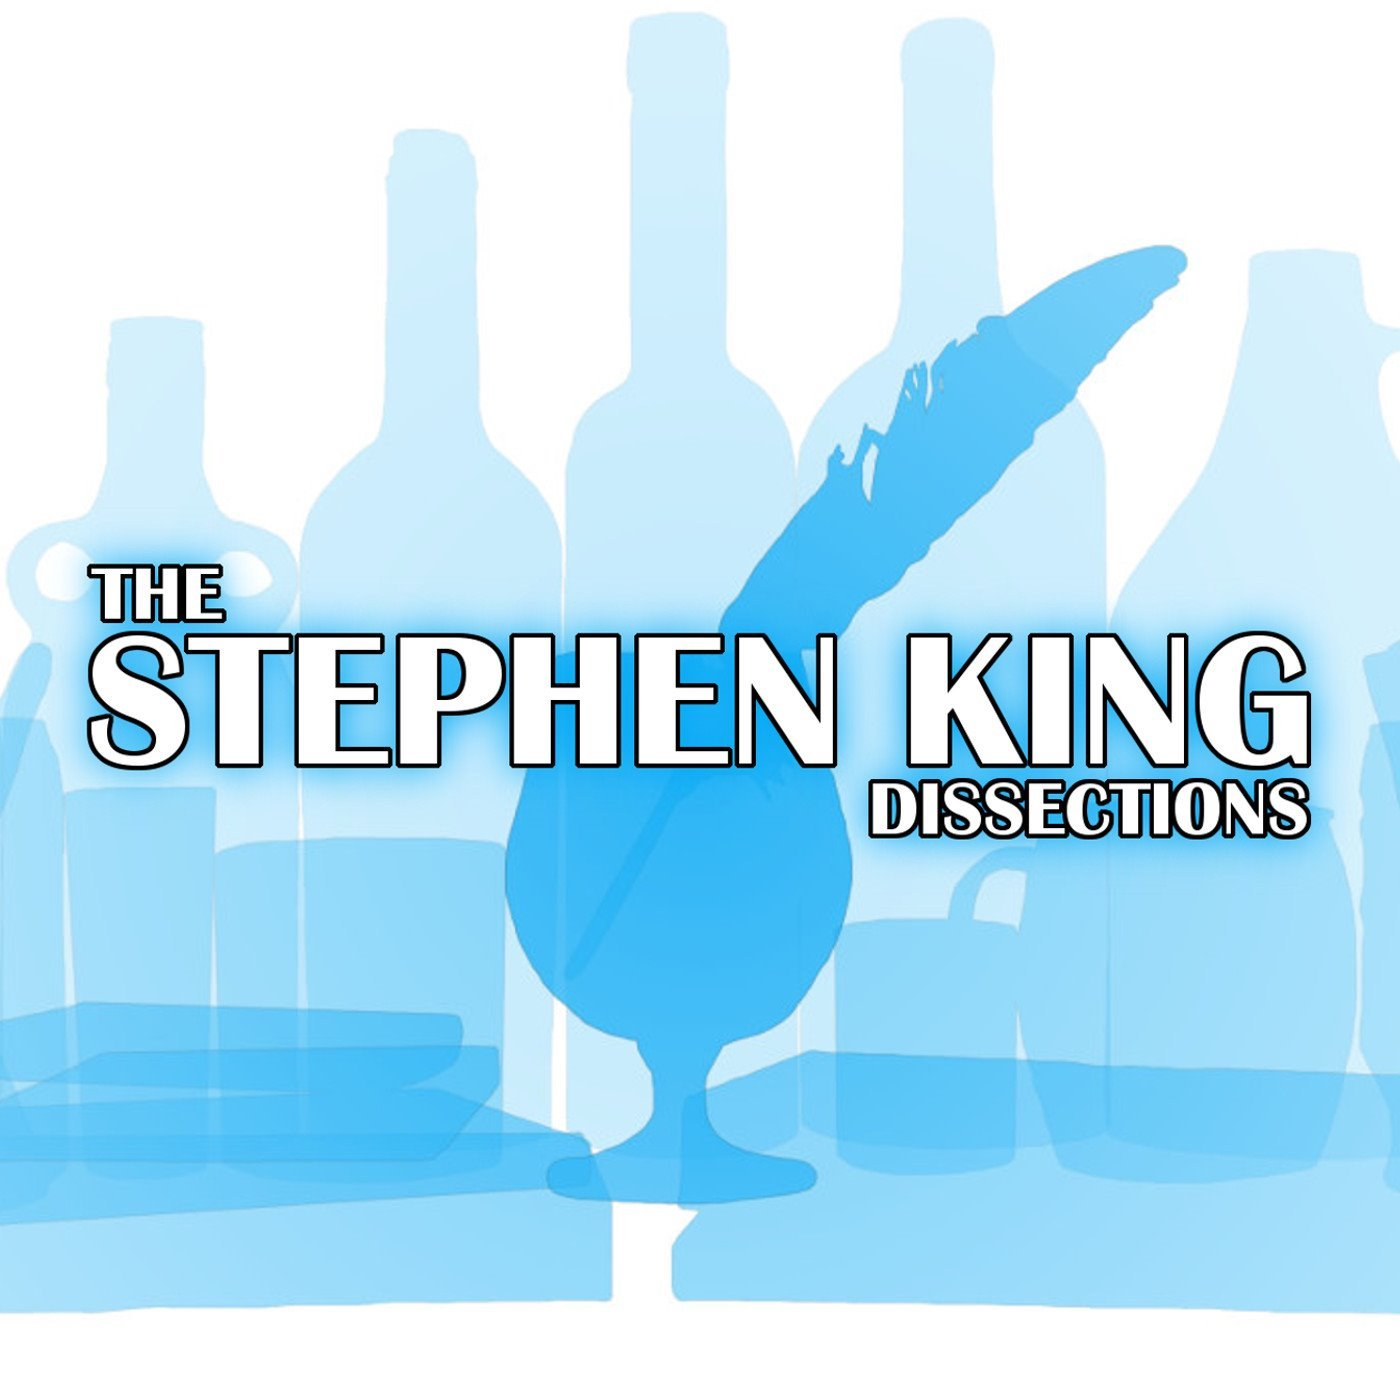 THE DEAD ZONE Review and Analysis (Stephen King Dissections ep. 10)